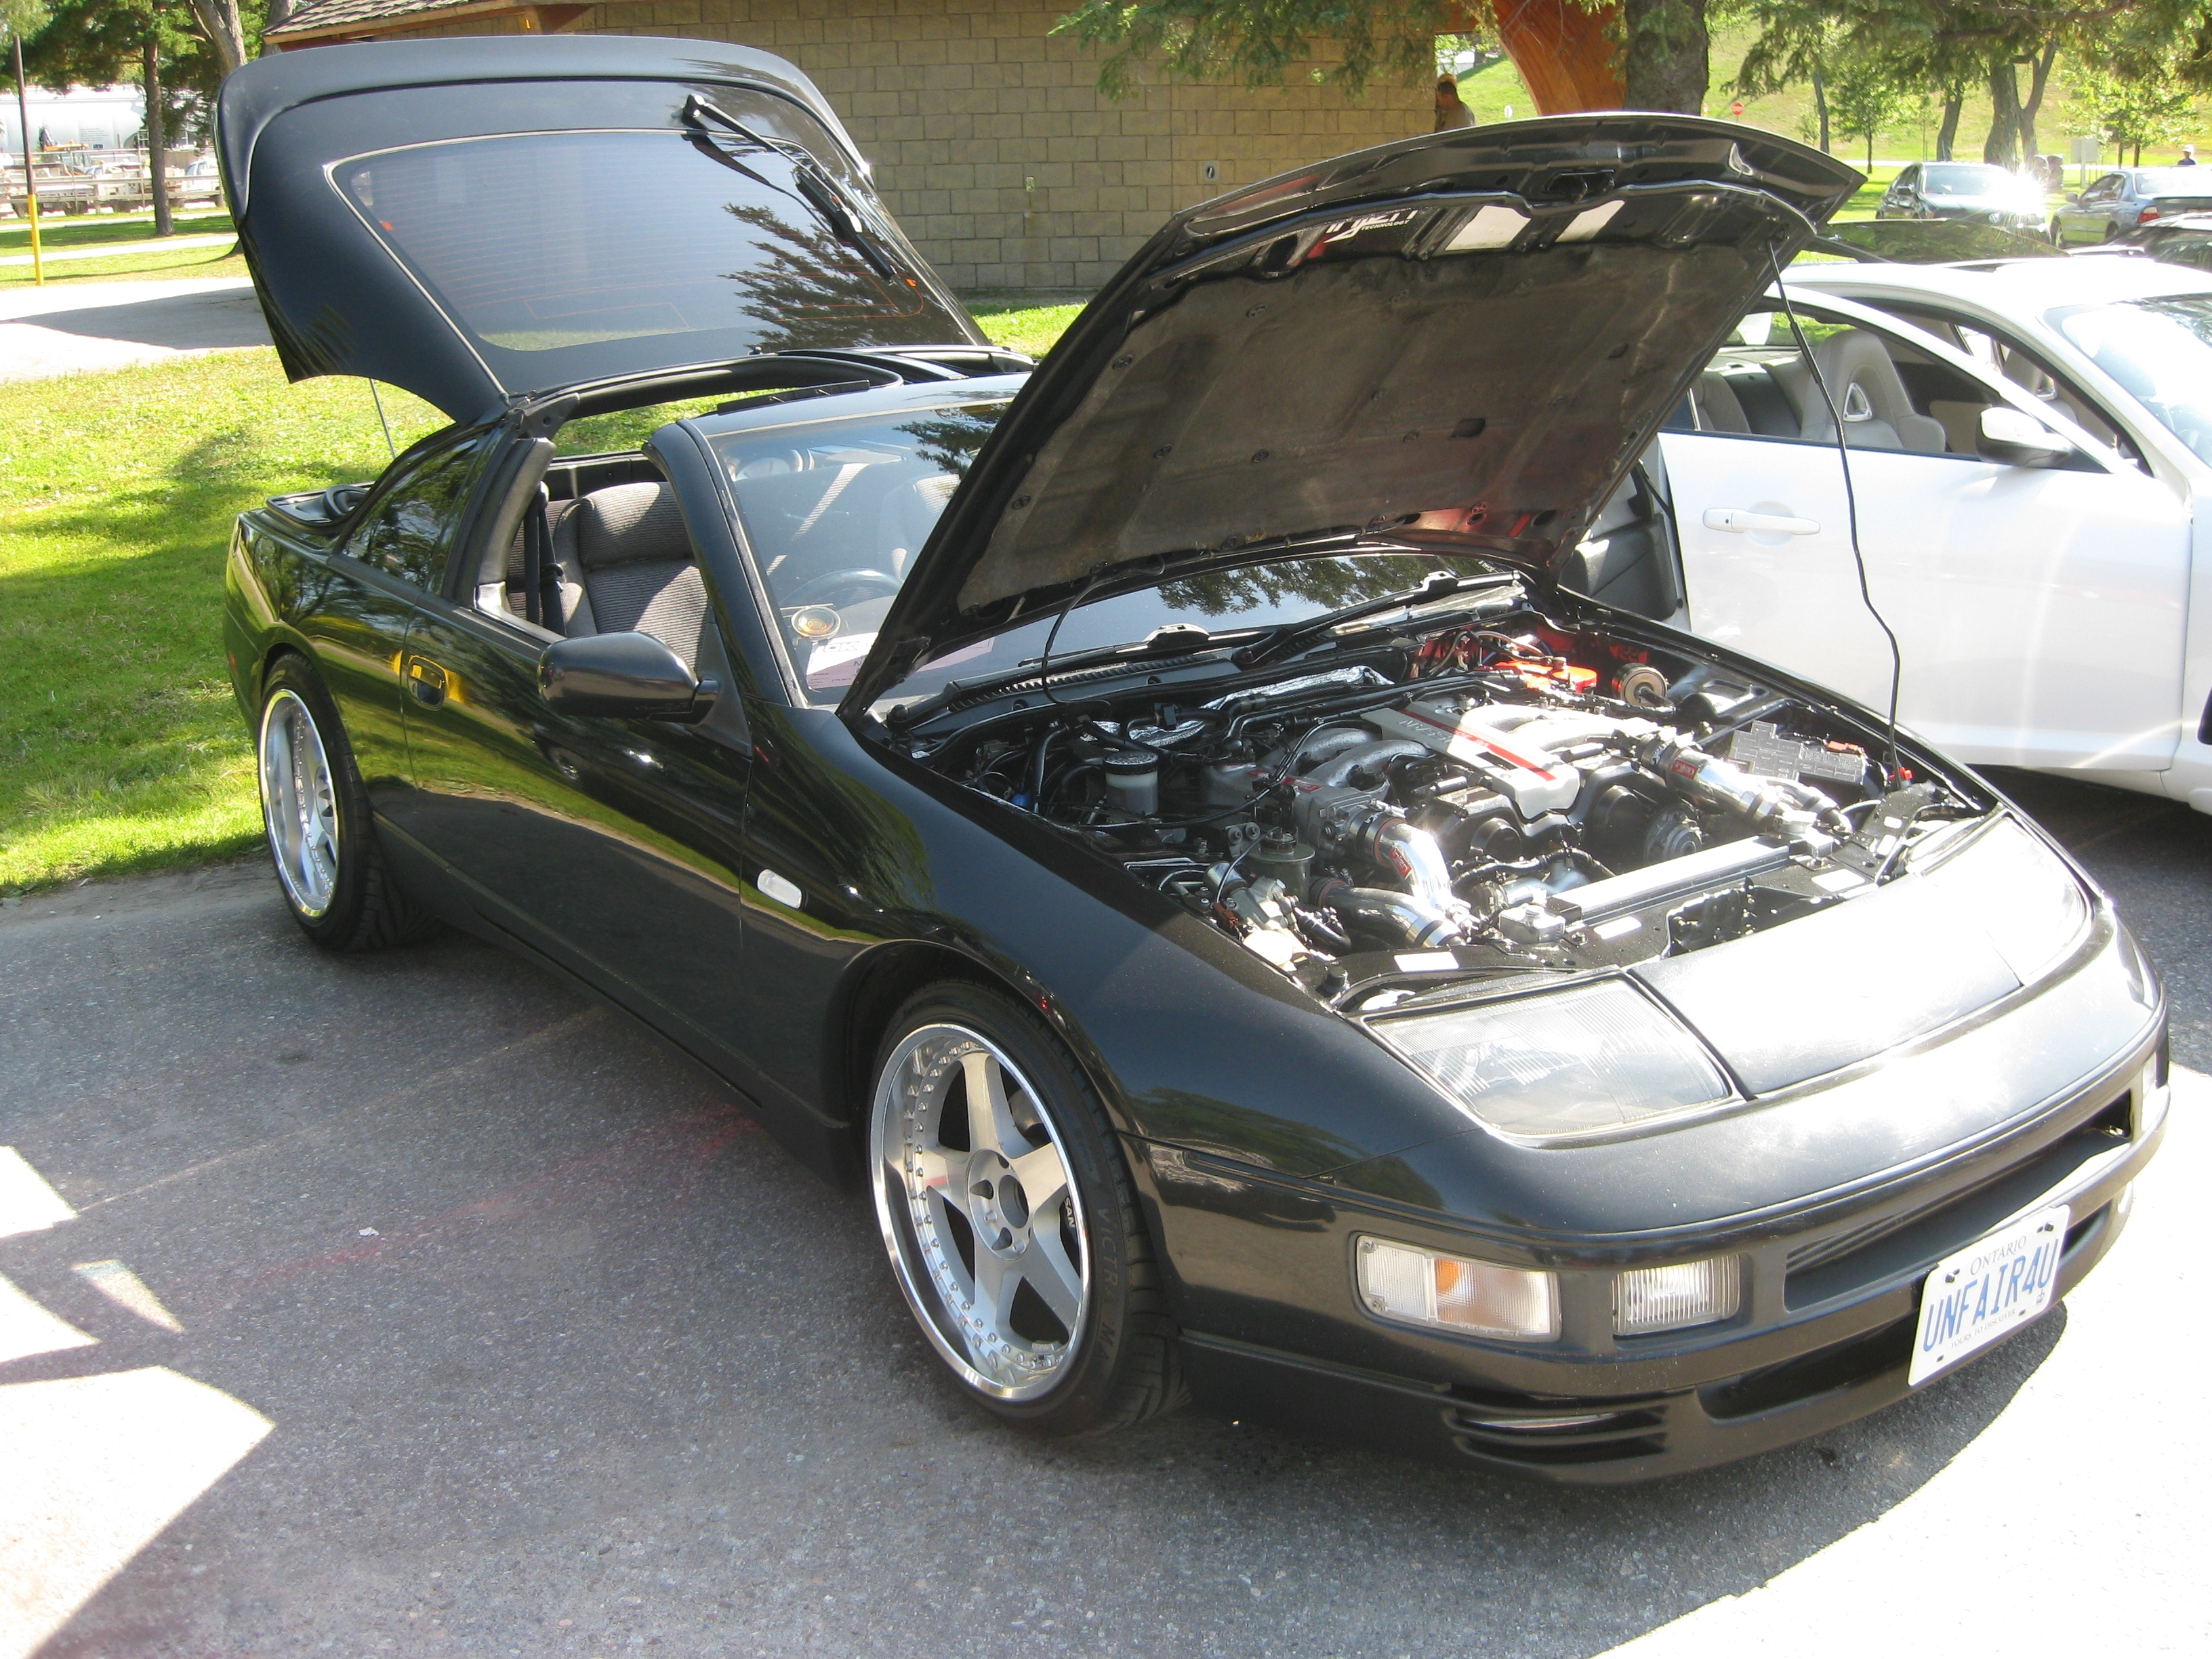 JDM_TWIN_TURBO 1993 Nissan 300ZX 11432795